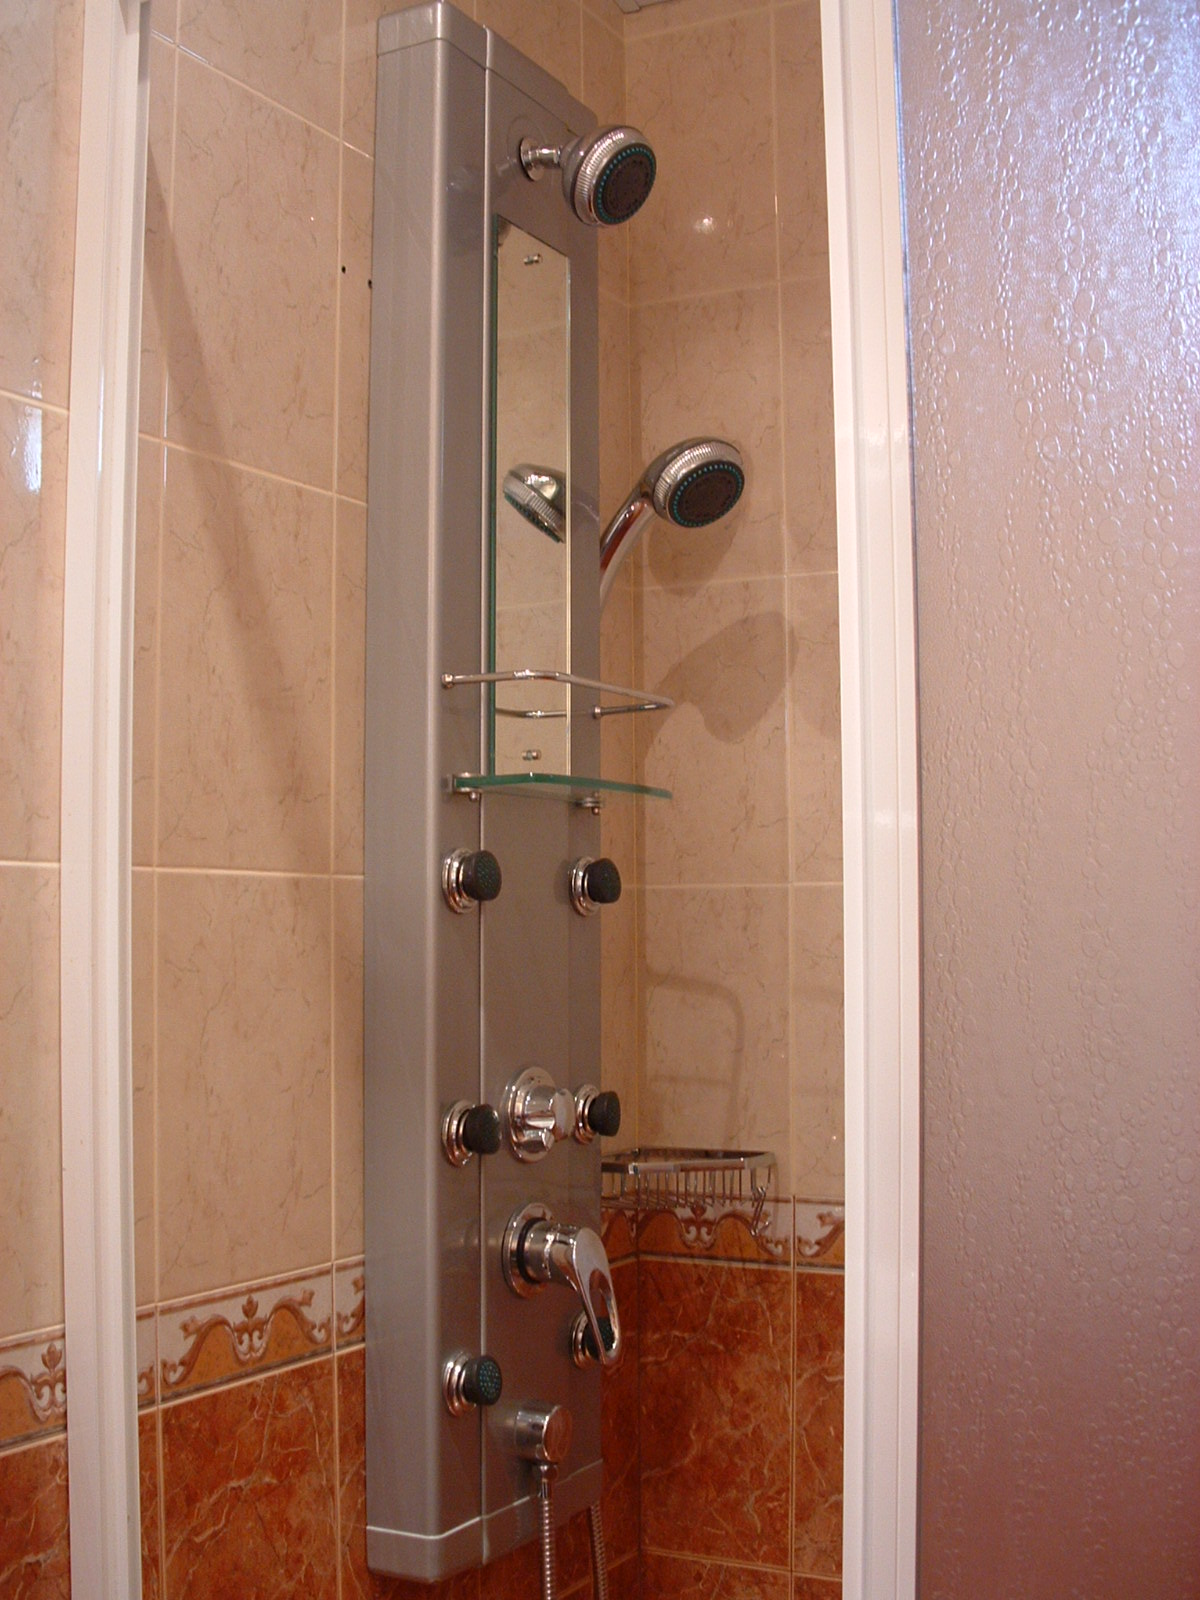 9.apartment 35m2 bathroom